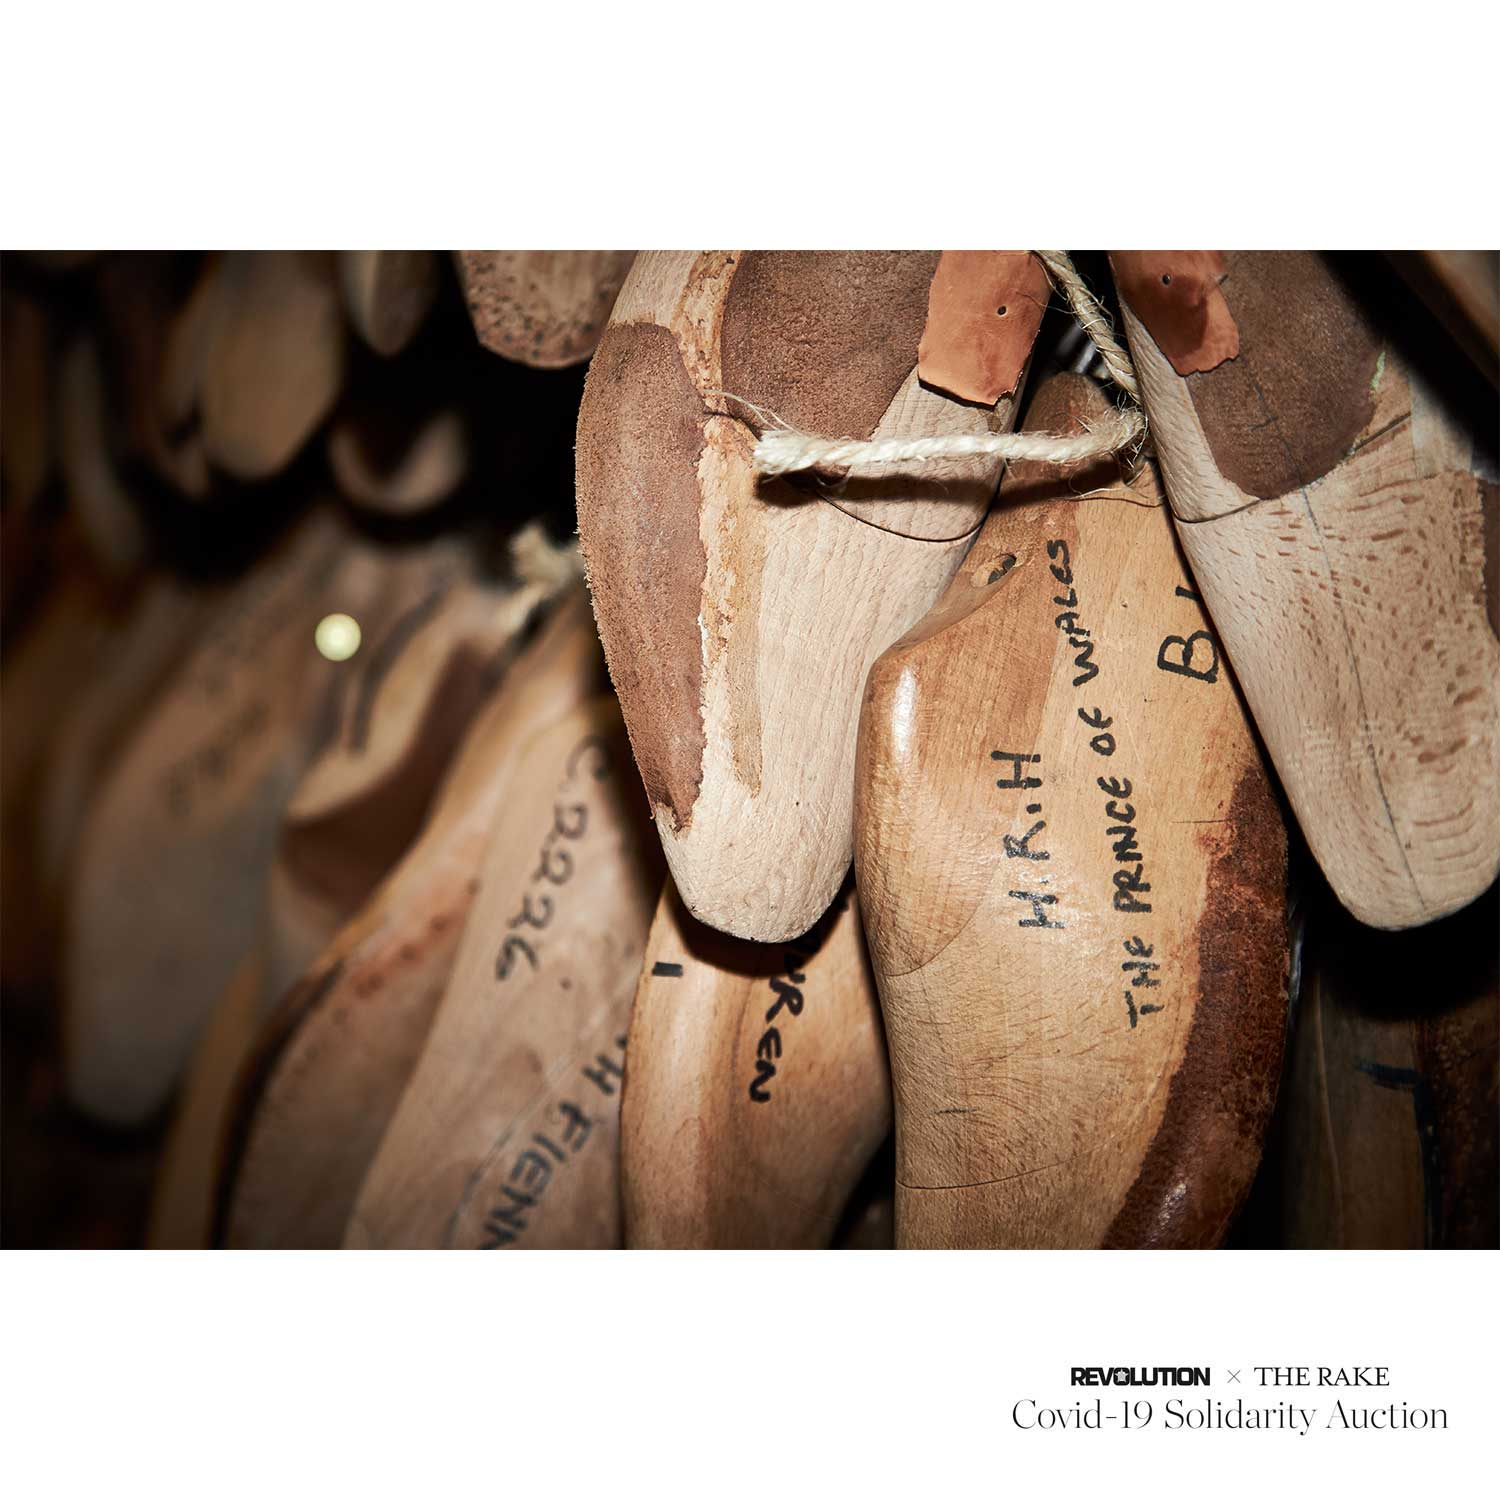 George Cleverley Bespoke Shoes for Revolution x The Rake Covid-19 Solidarity Auction